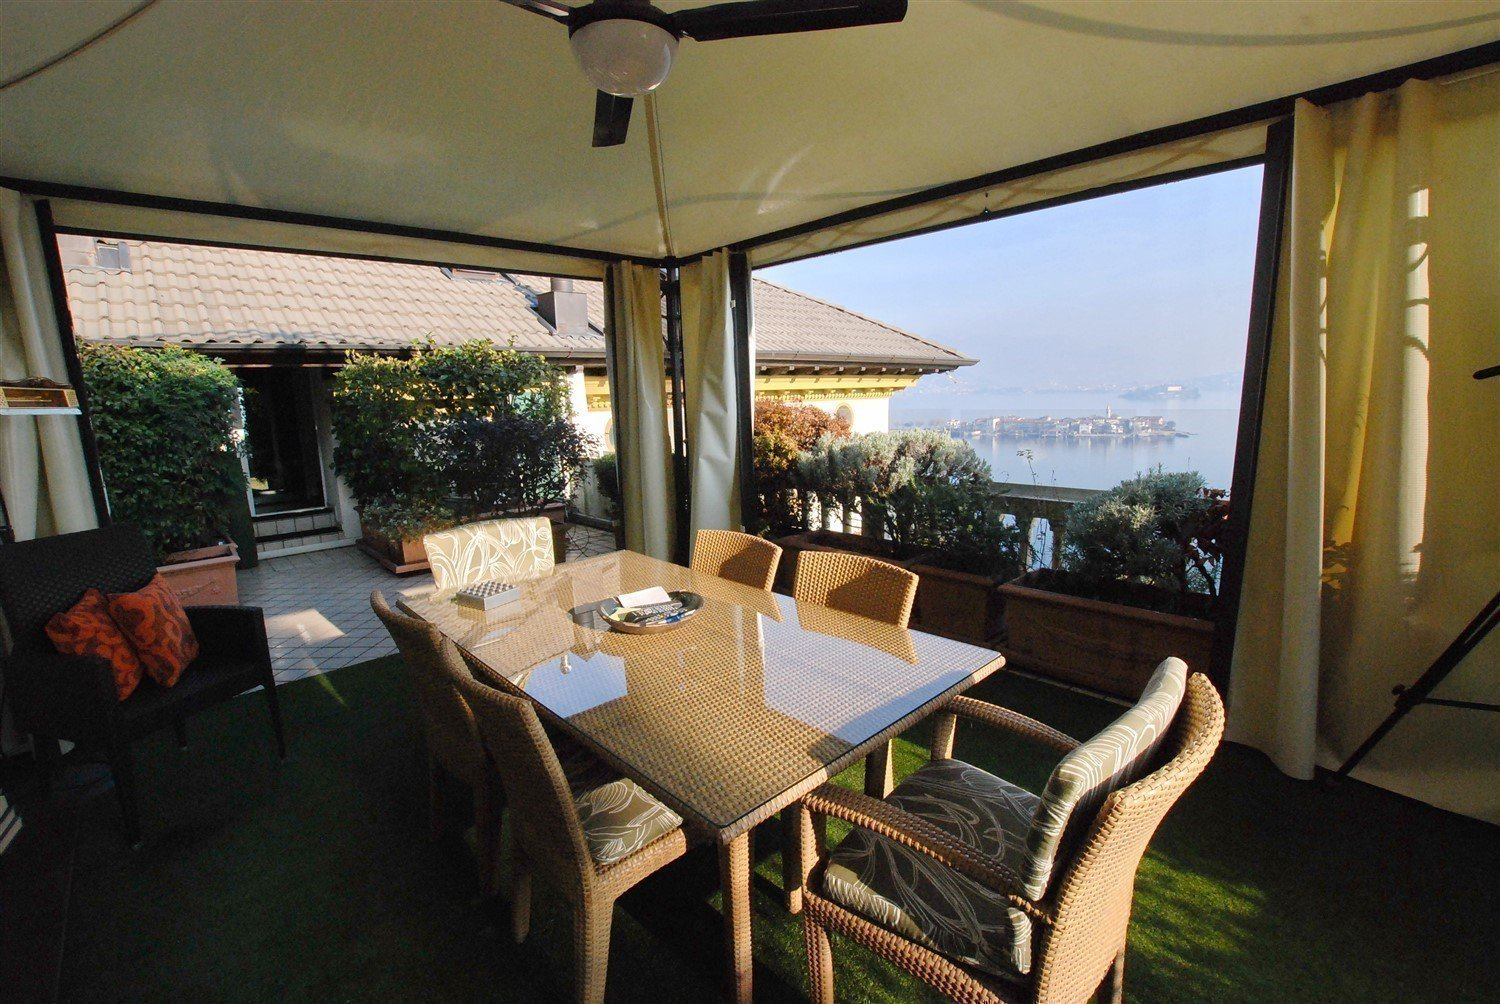 Apartment for sale in Baveno, inside a historic lake front villa - terrace with lake view